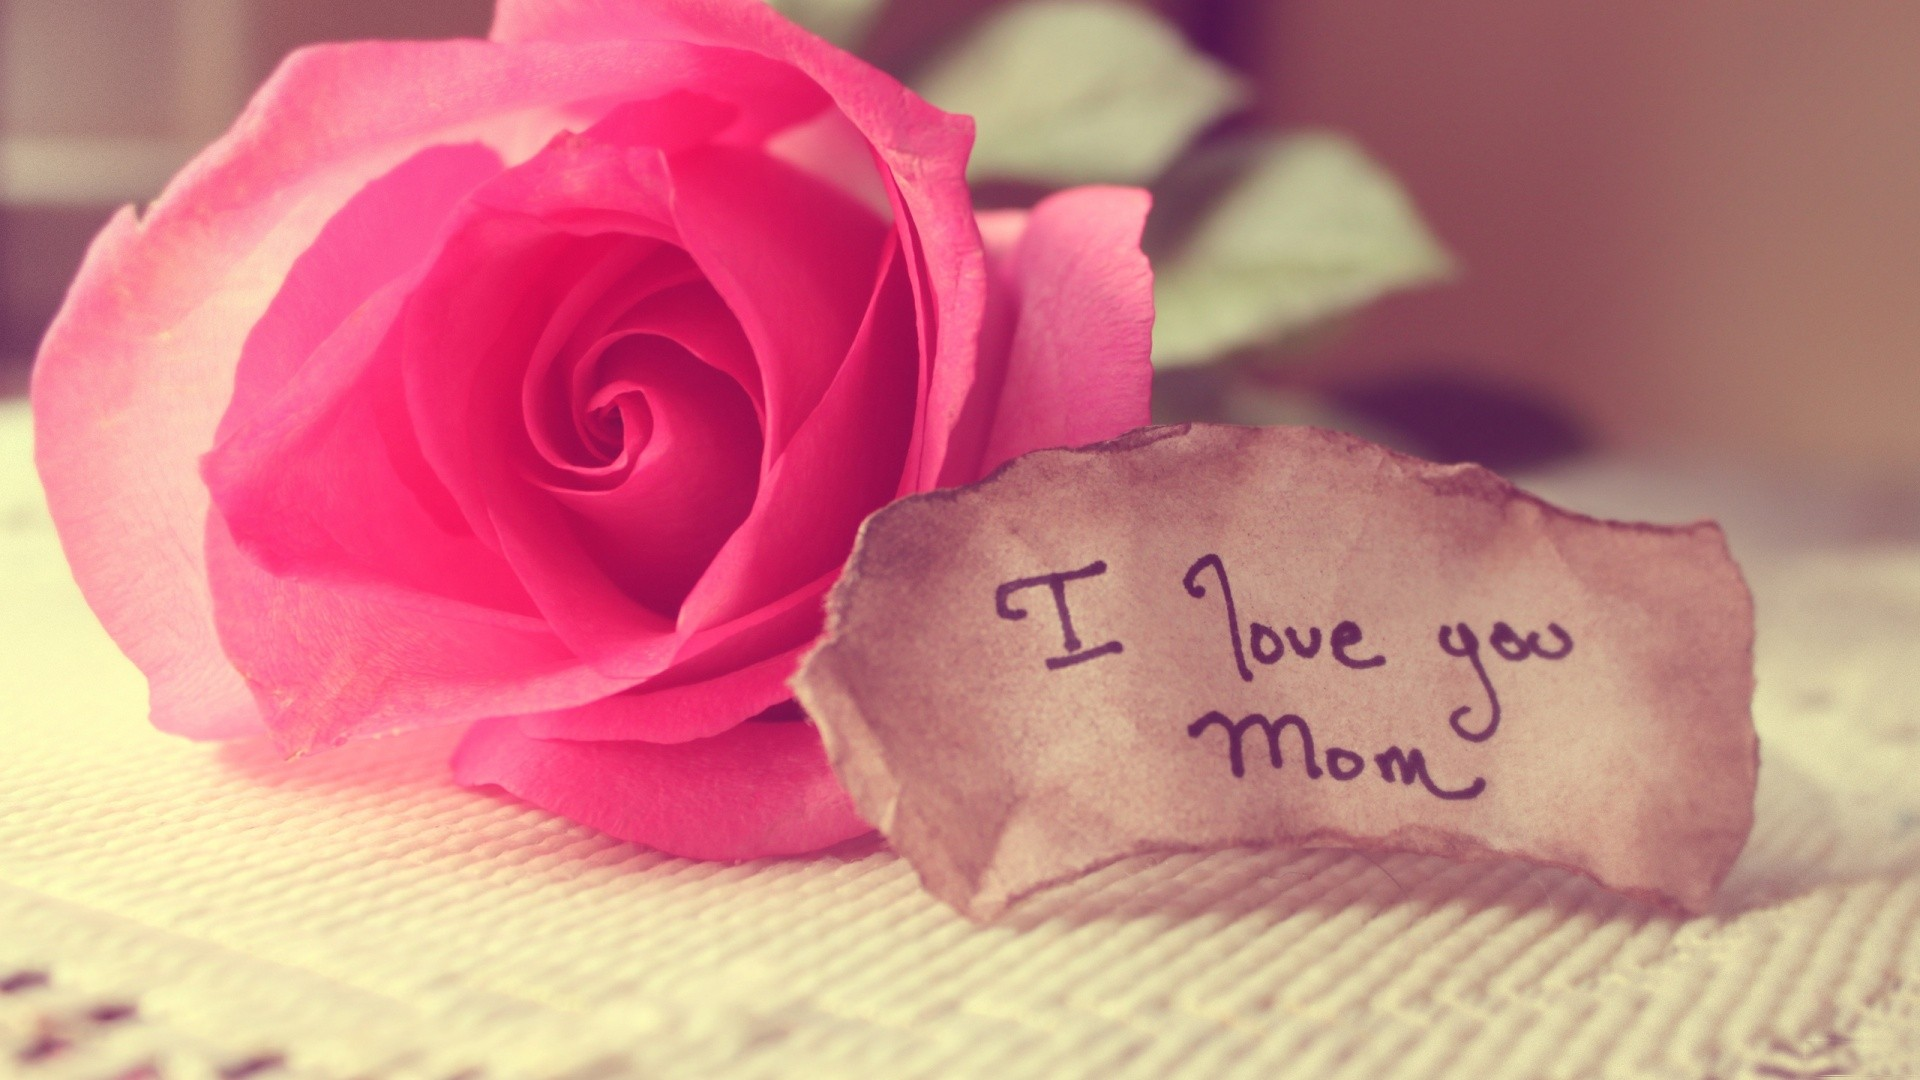 I Love You Mom Wallpapers HD Wallpaper of Love 1920x1080